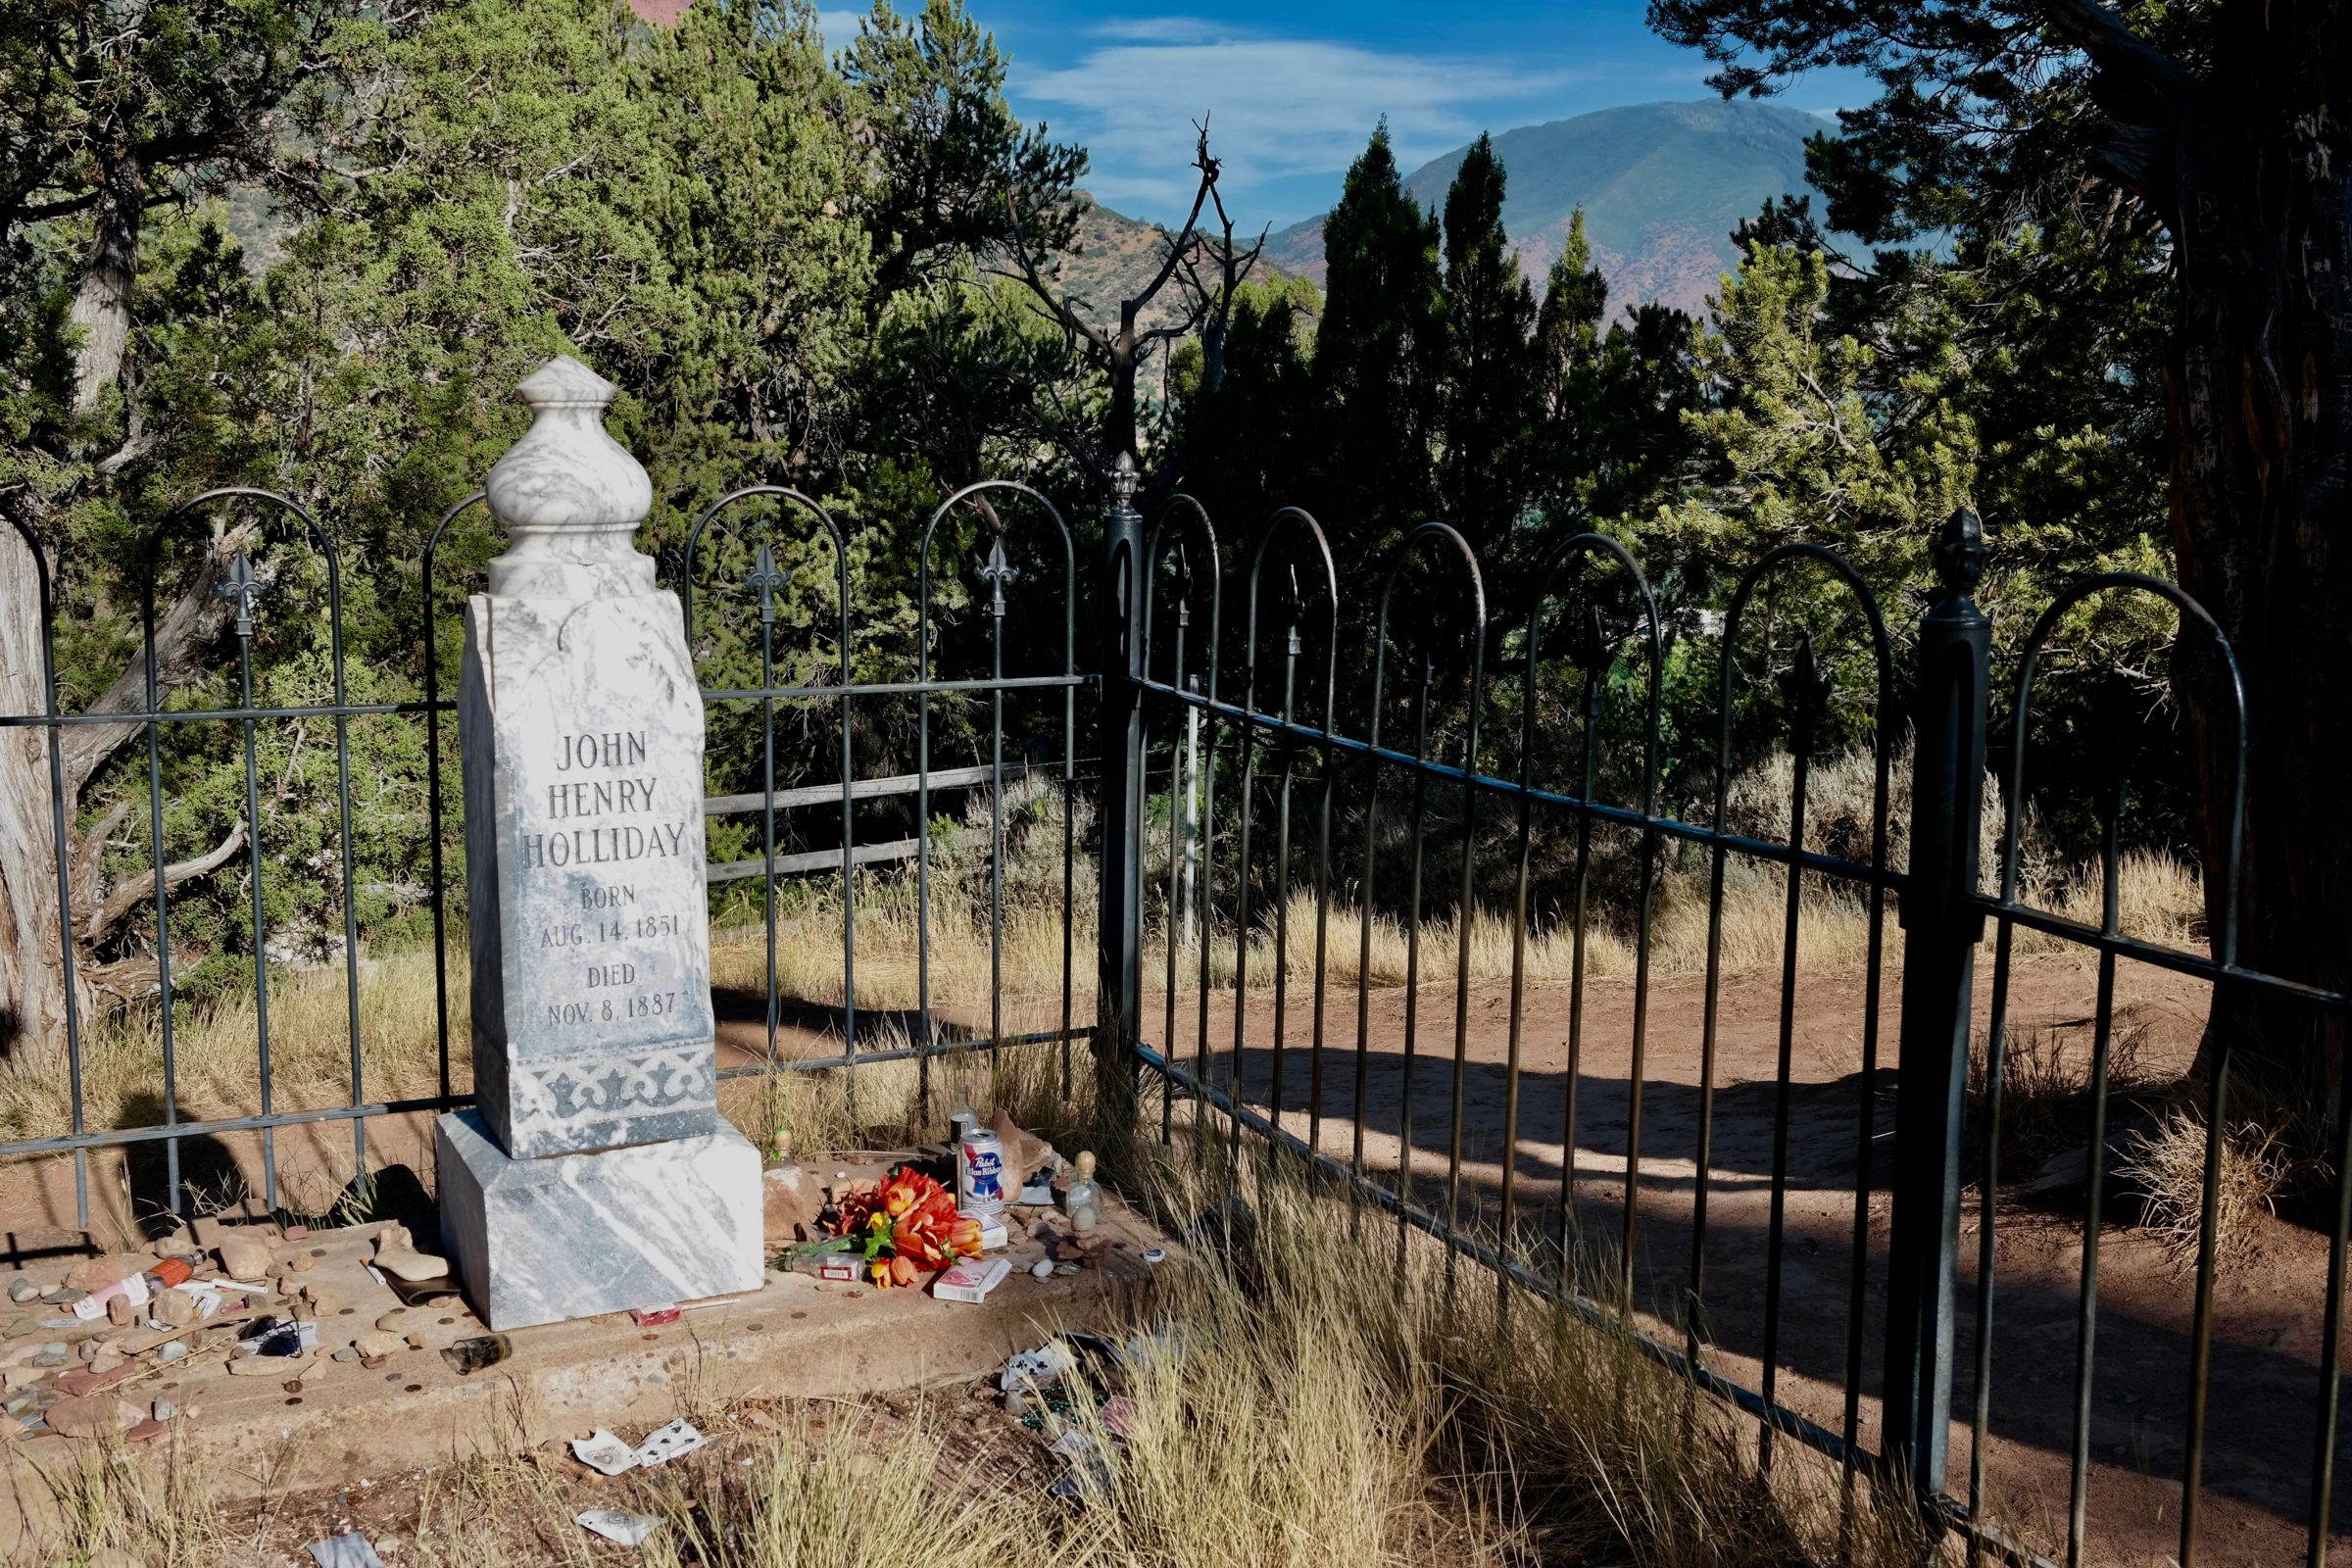 Doc Holliday grave site in Glenwood Springs Colorado